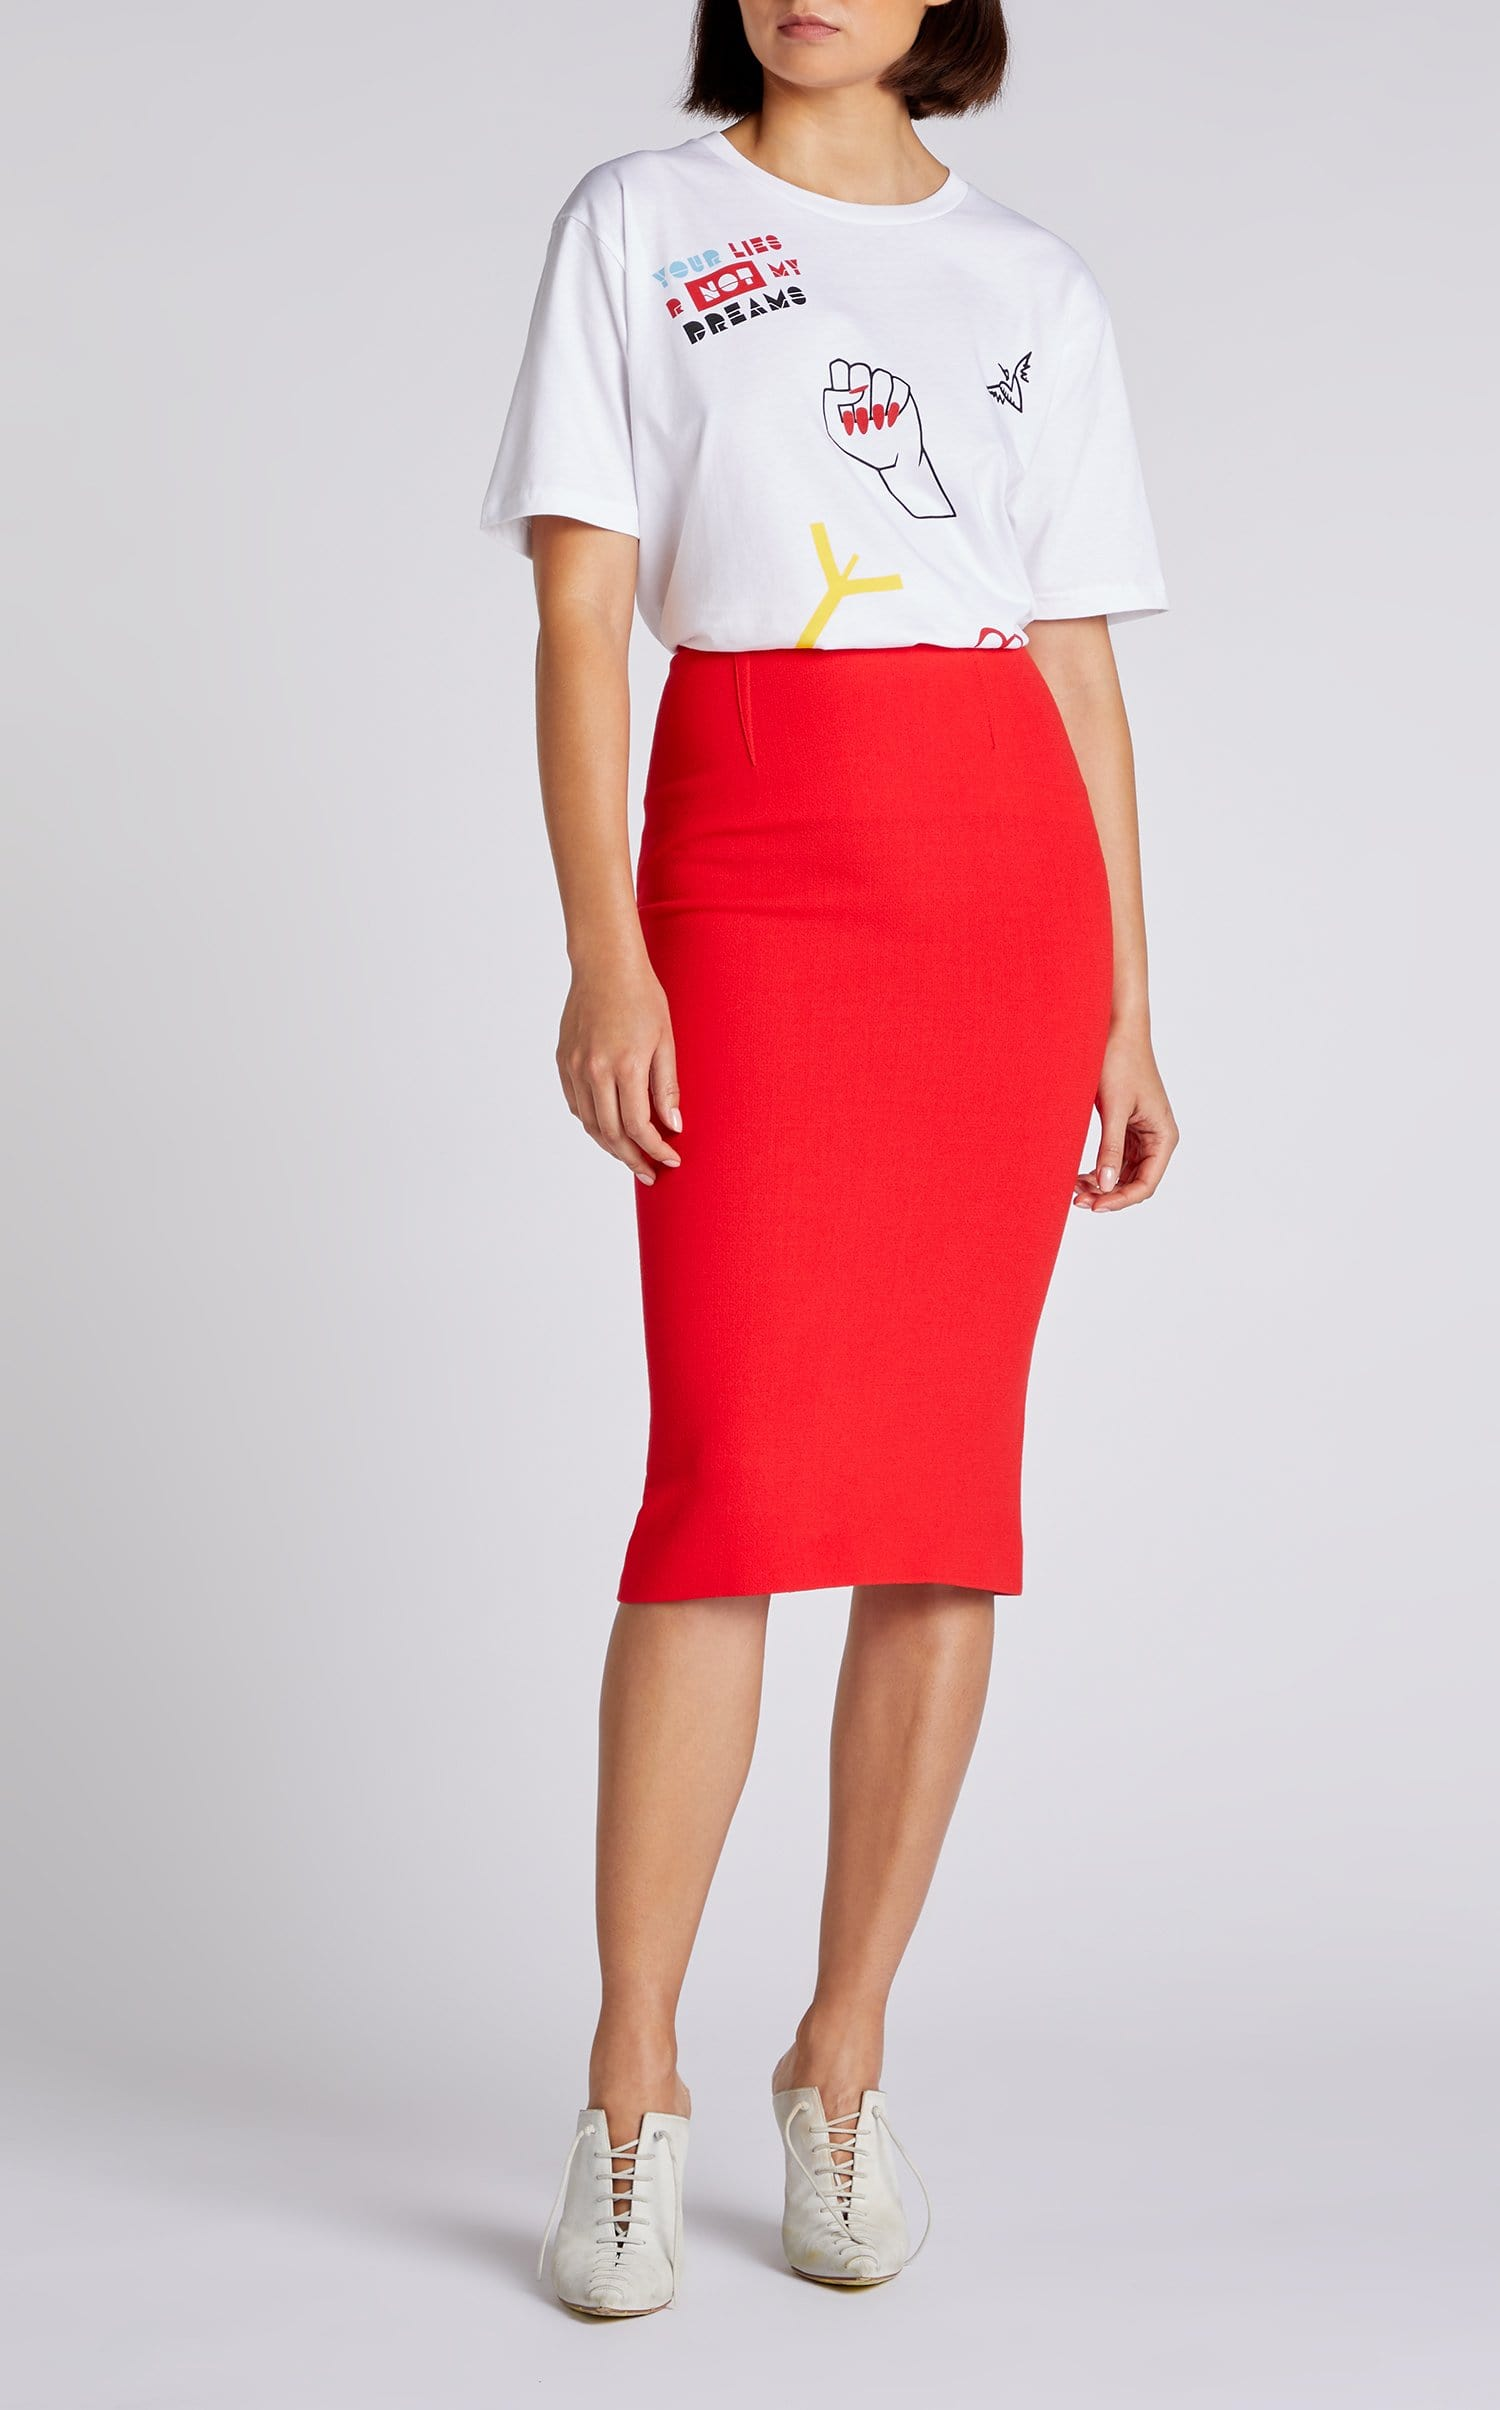 Roland Mouret x The Circle T-Shirt